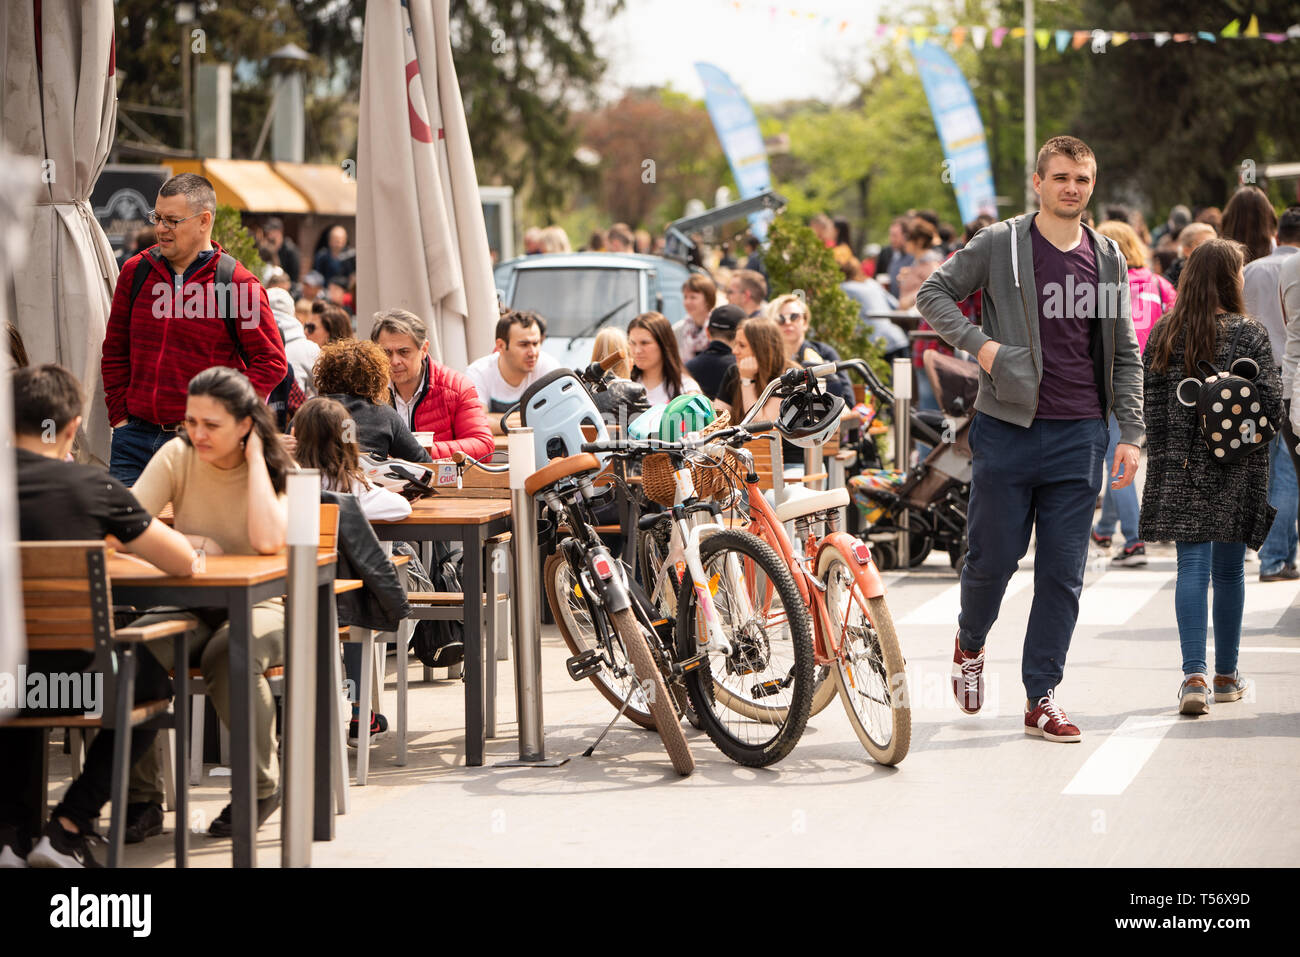 Bucharest, Romania: 21.04.2019 - Street Food Truck festival. Parked by the table bicycles at a food street festival in the park while the owners are having lunch. Relaxing people in their spare time - weekend activities - Stock Image